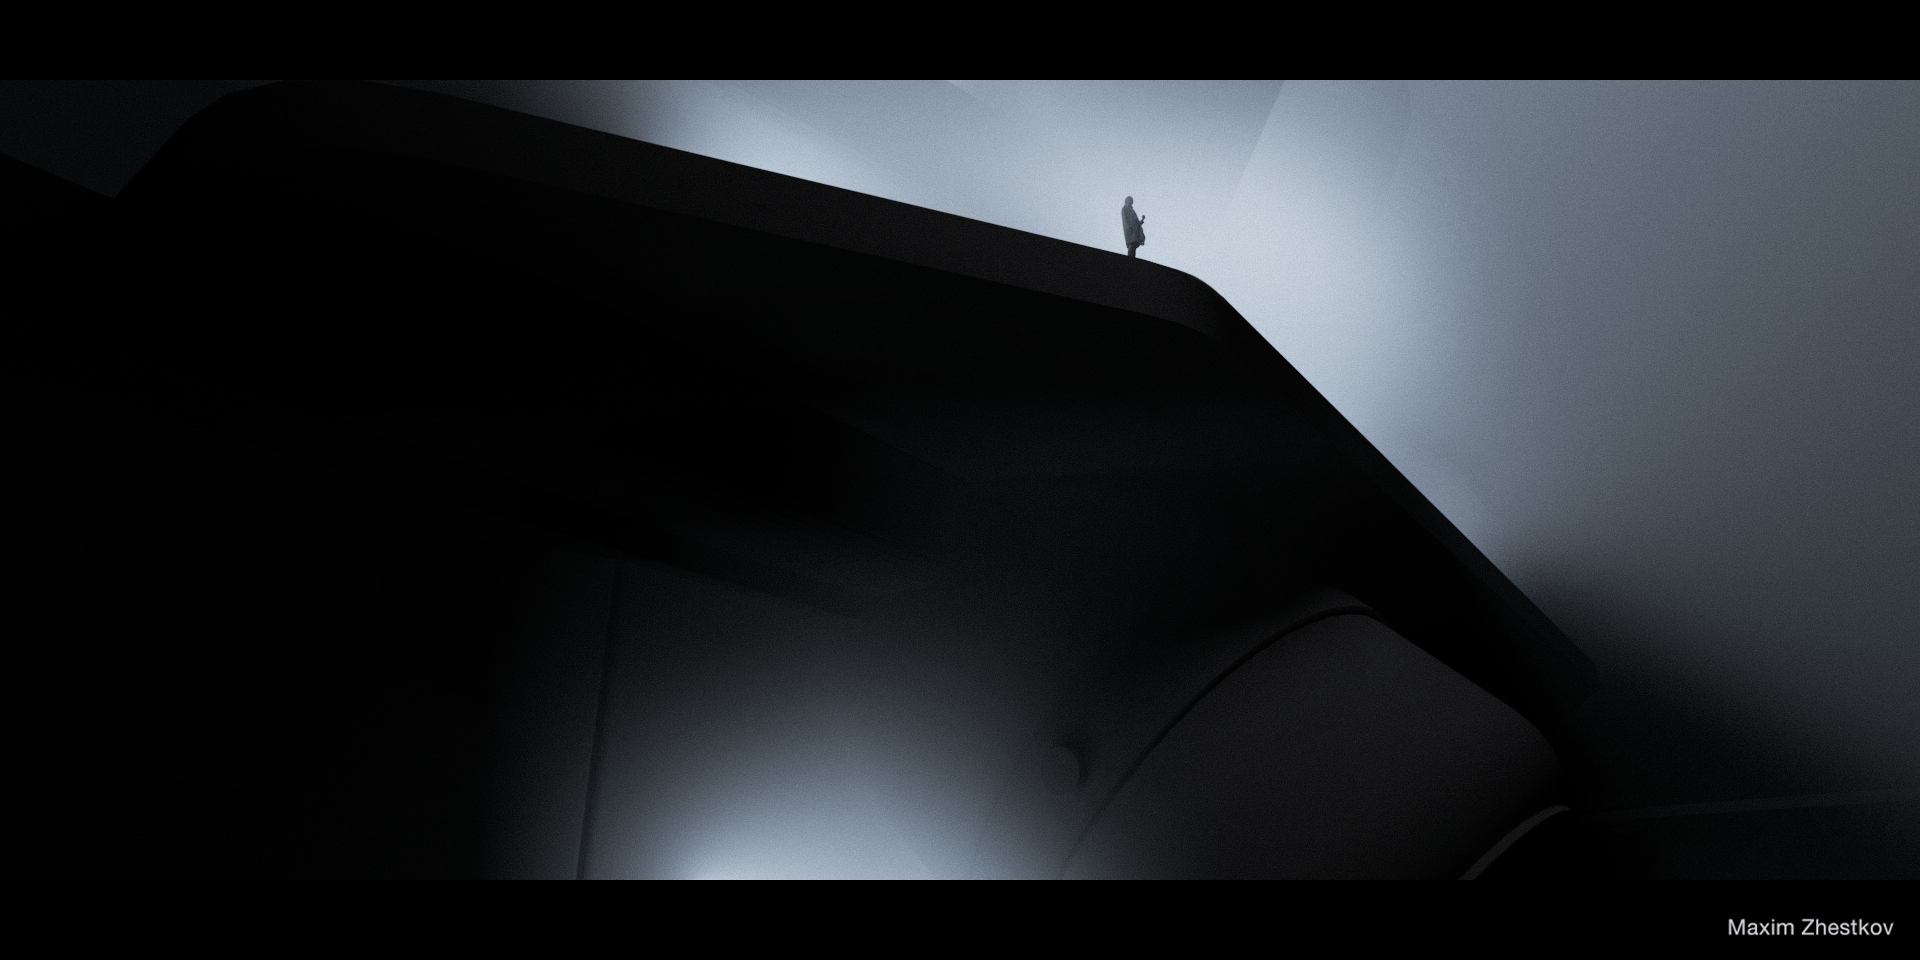 illustrations depict future noir in brooding shapes and shadows